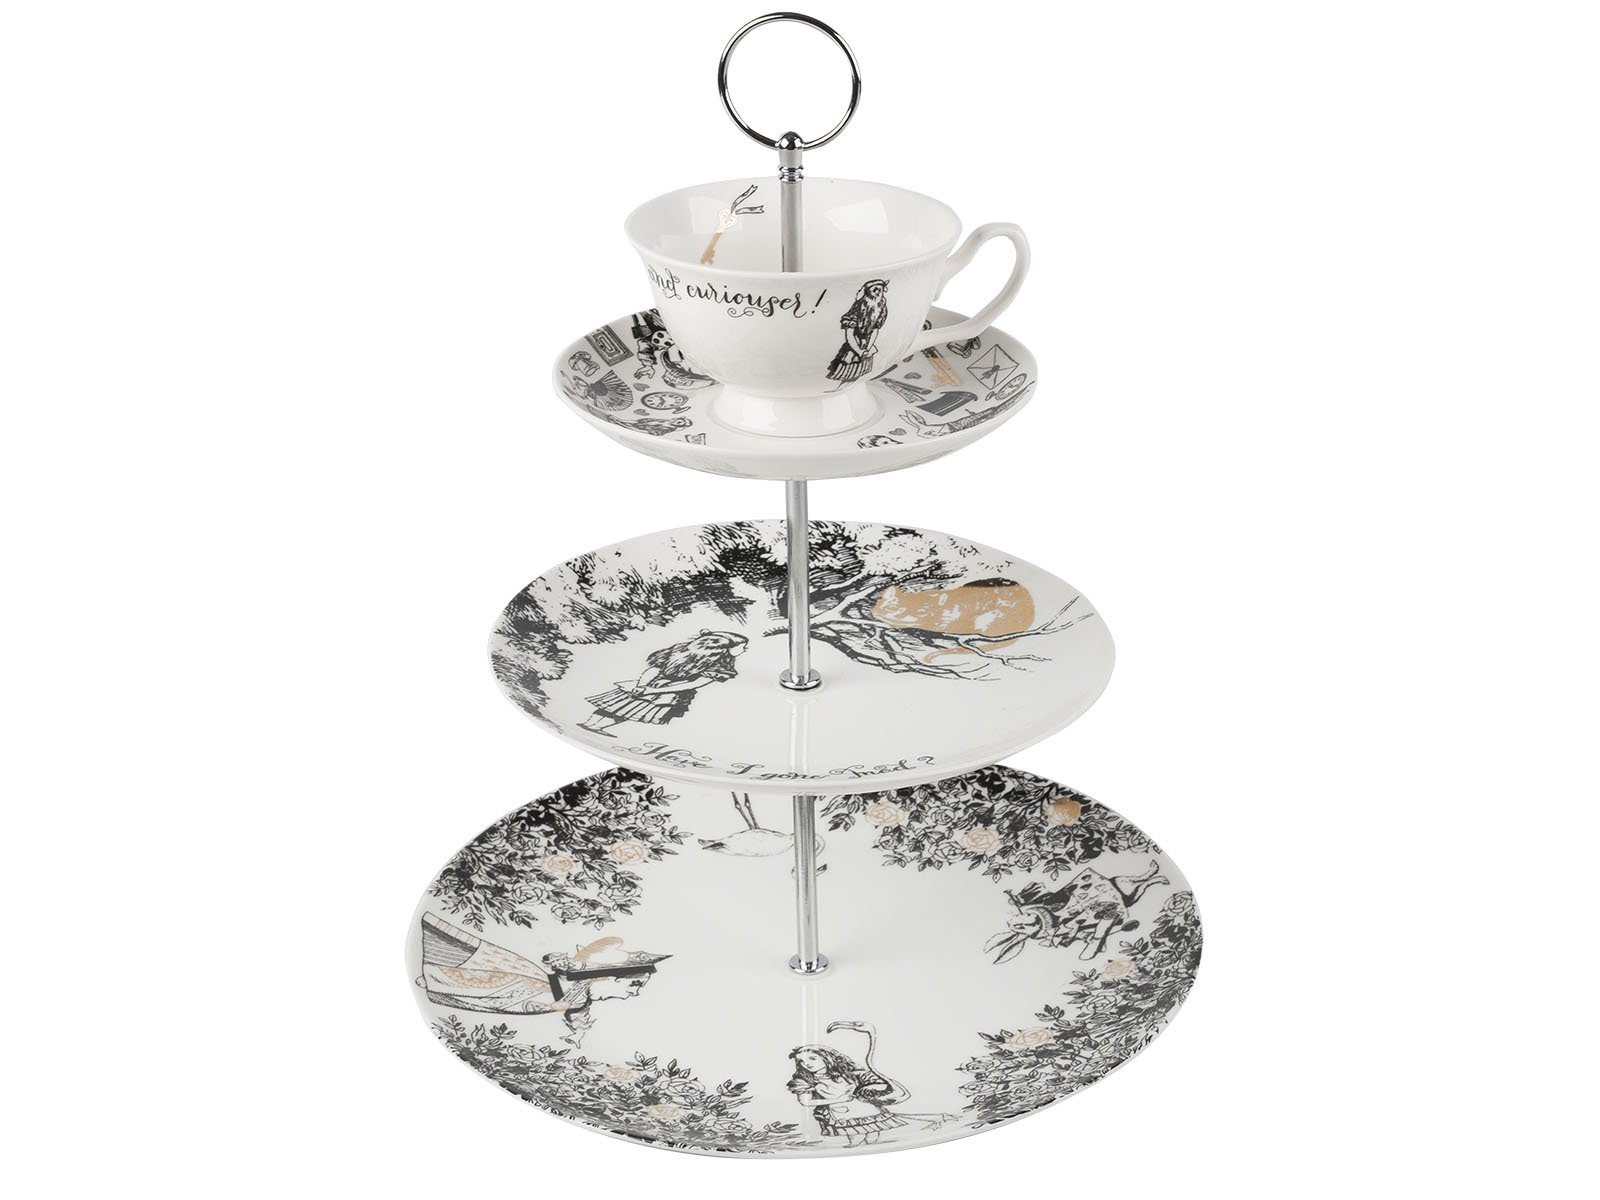 Creative Tops V&A Alice in Wonderland 3 Tier China Teacup Cake Stand Gift Boxed